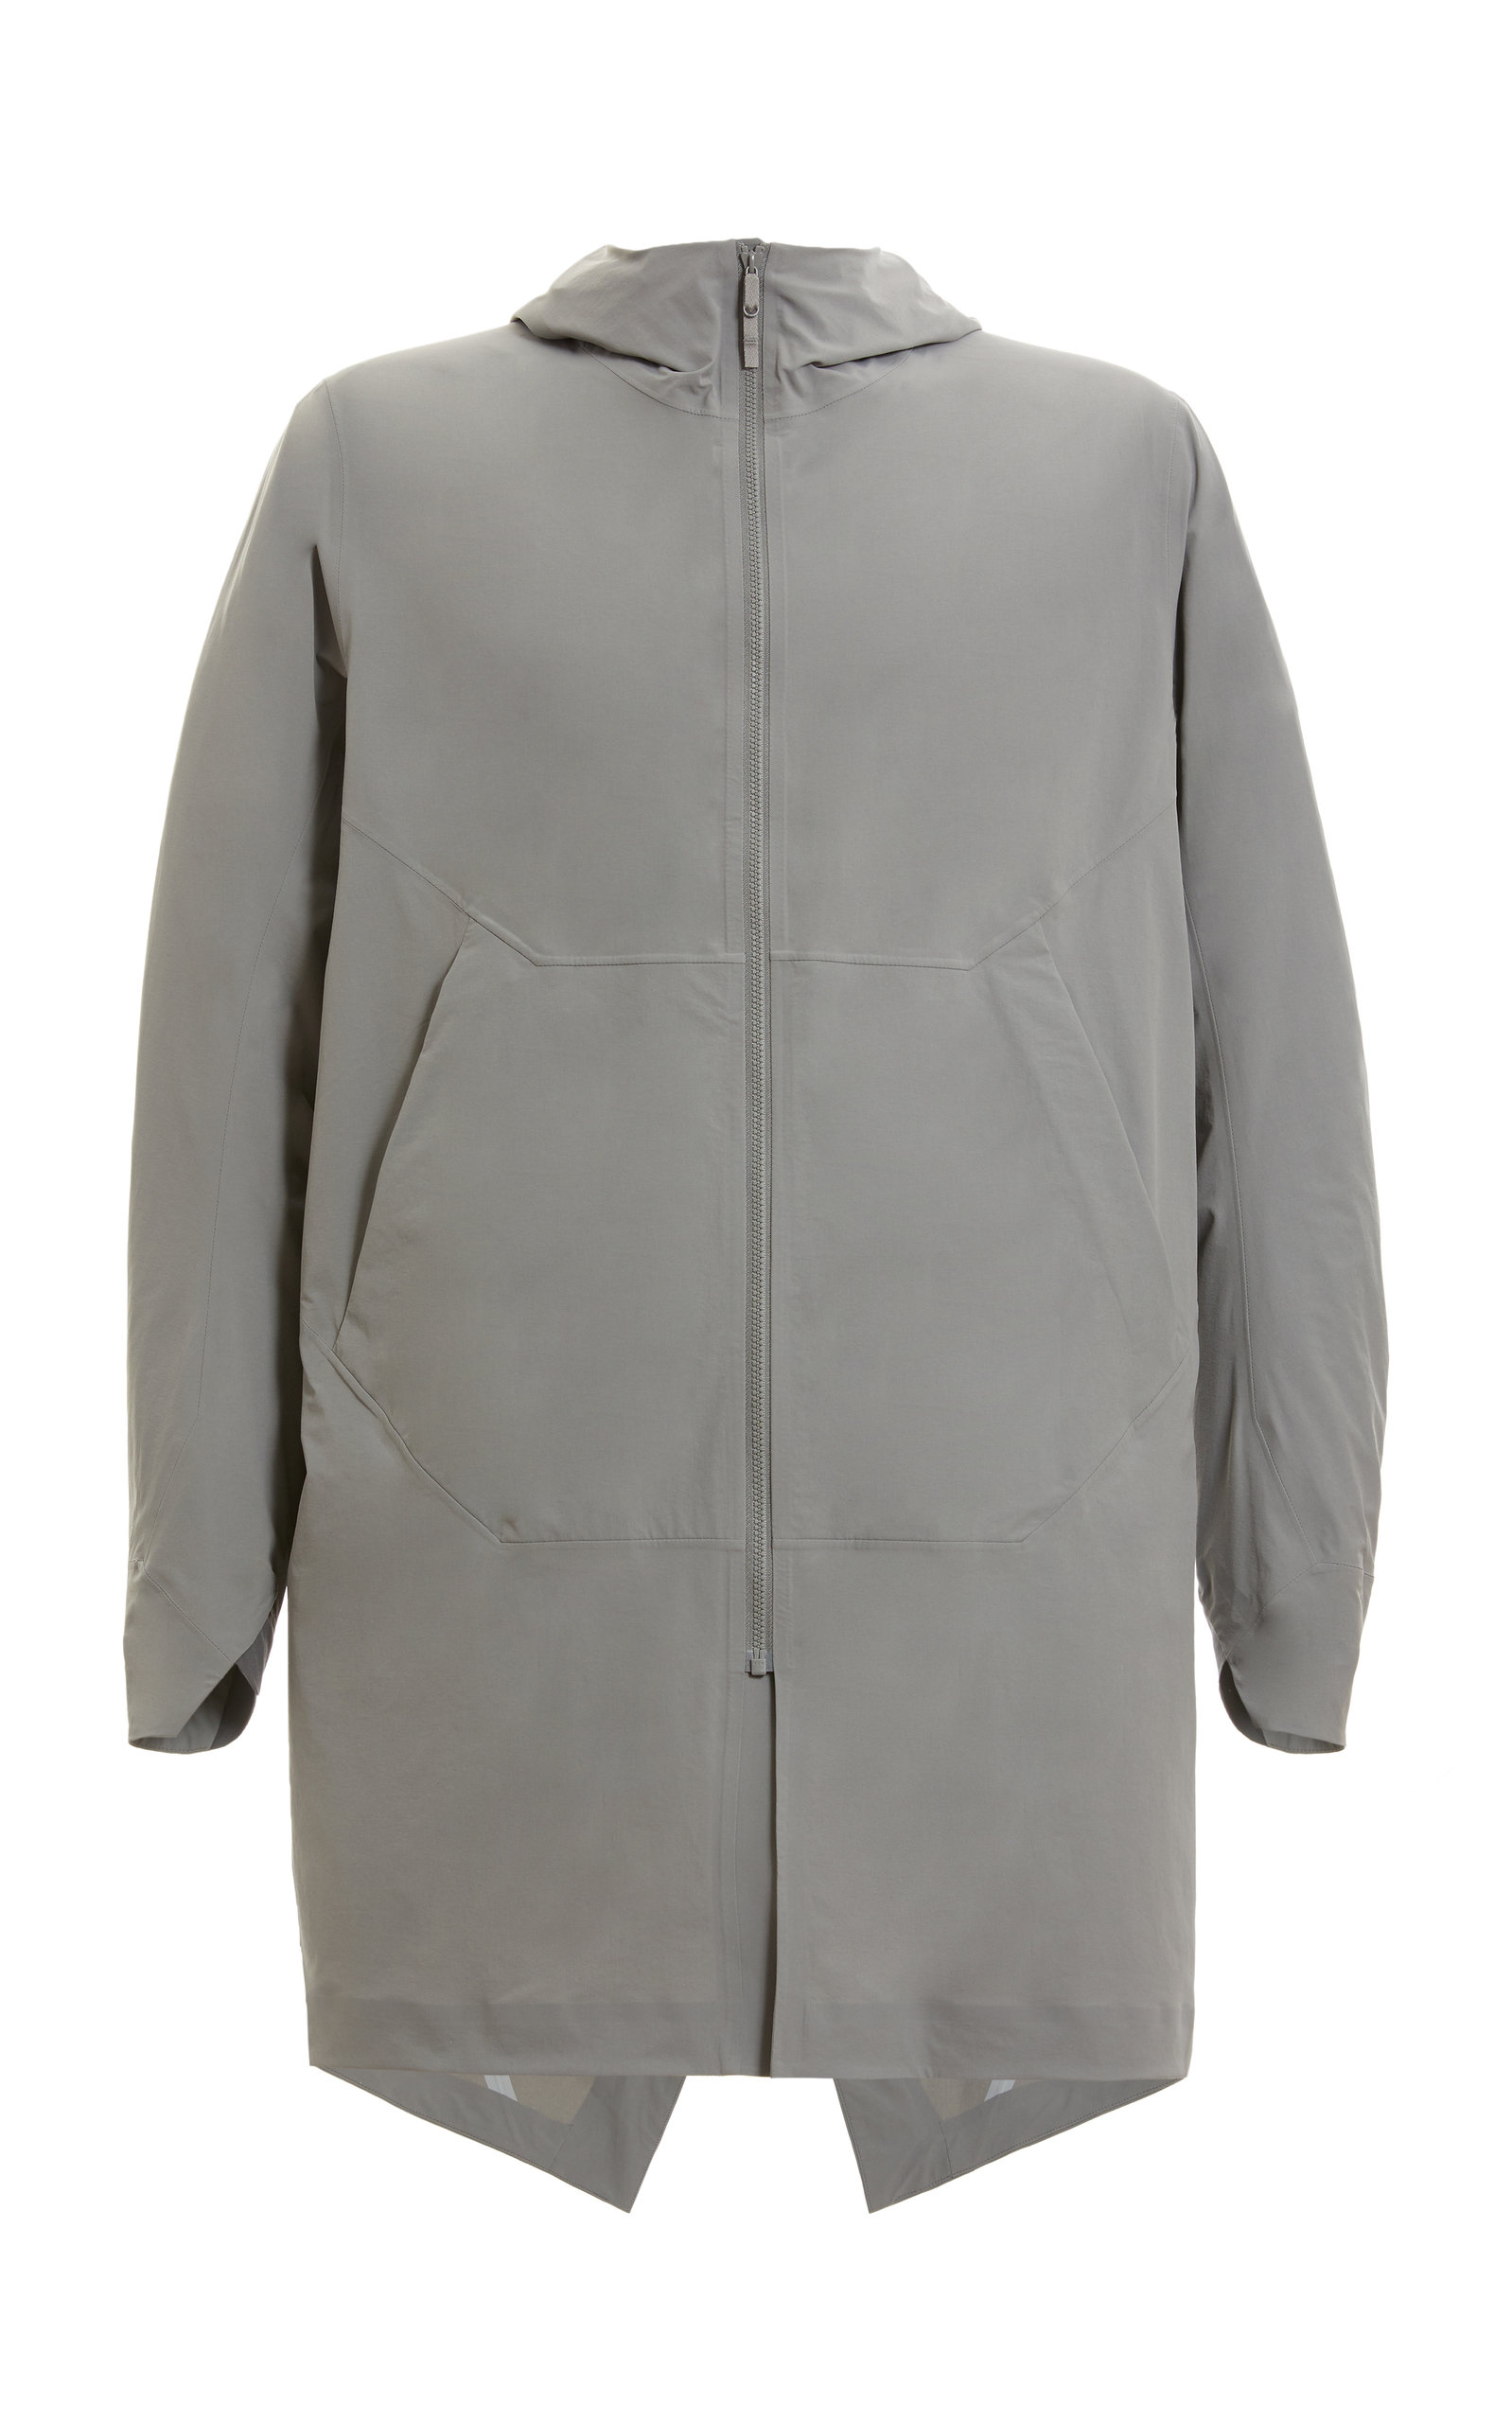 Founded in 2009 by high-end outdoor clothing company Arc'teryx, Veilance was created as an expressio